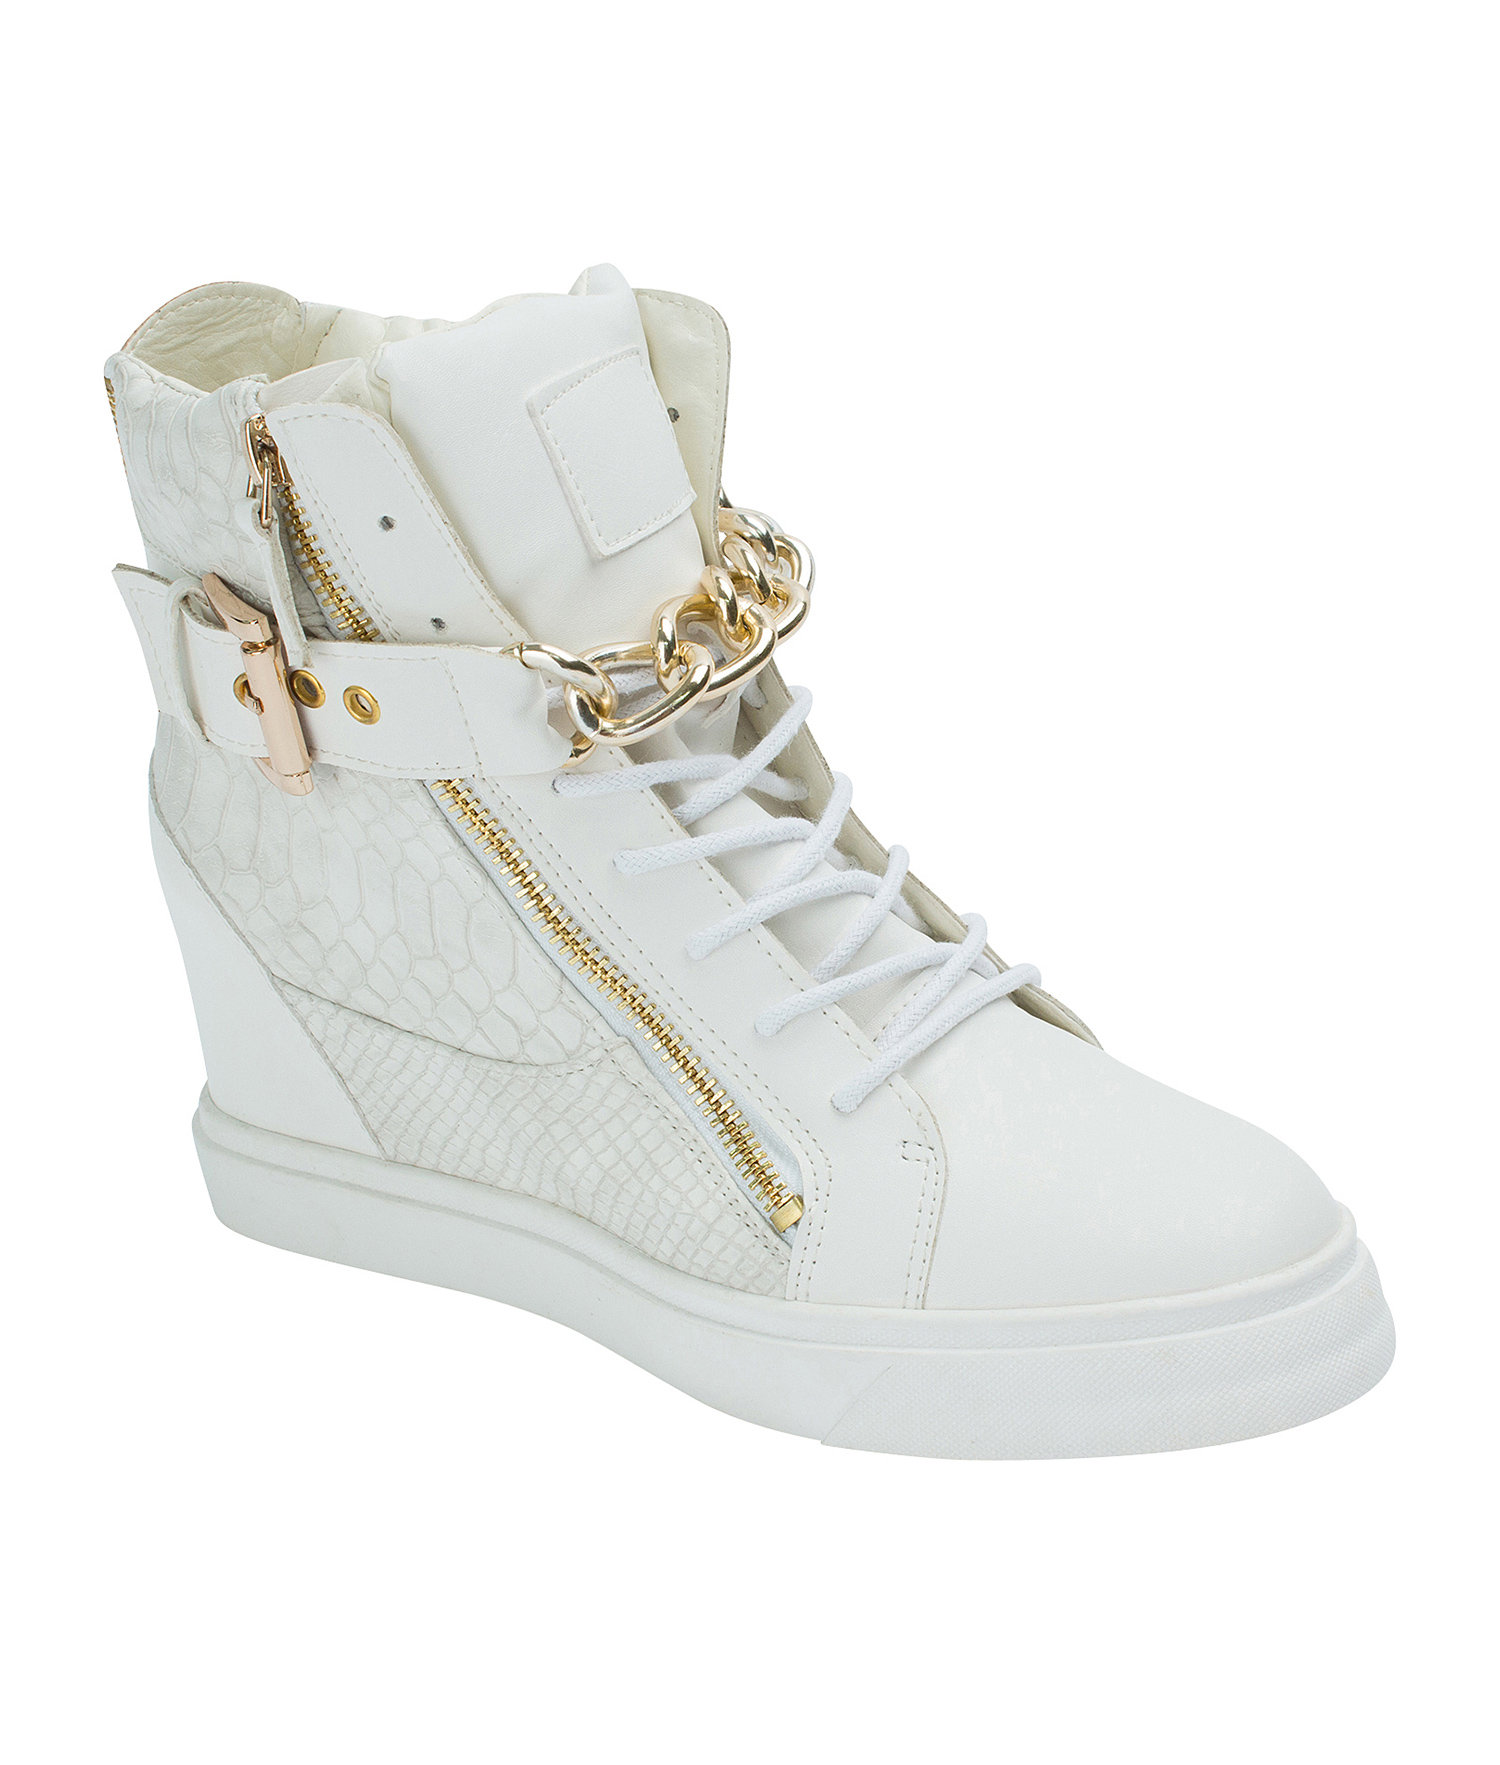 AnnaKastle Womens Gold Chain High Top Wedge Sneakers White